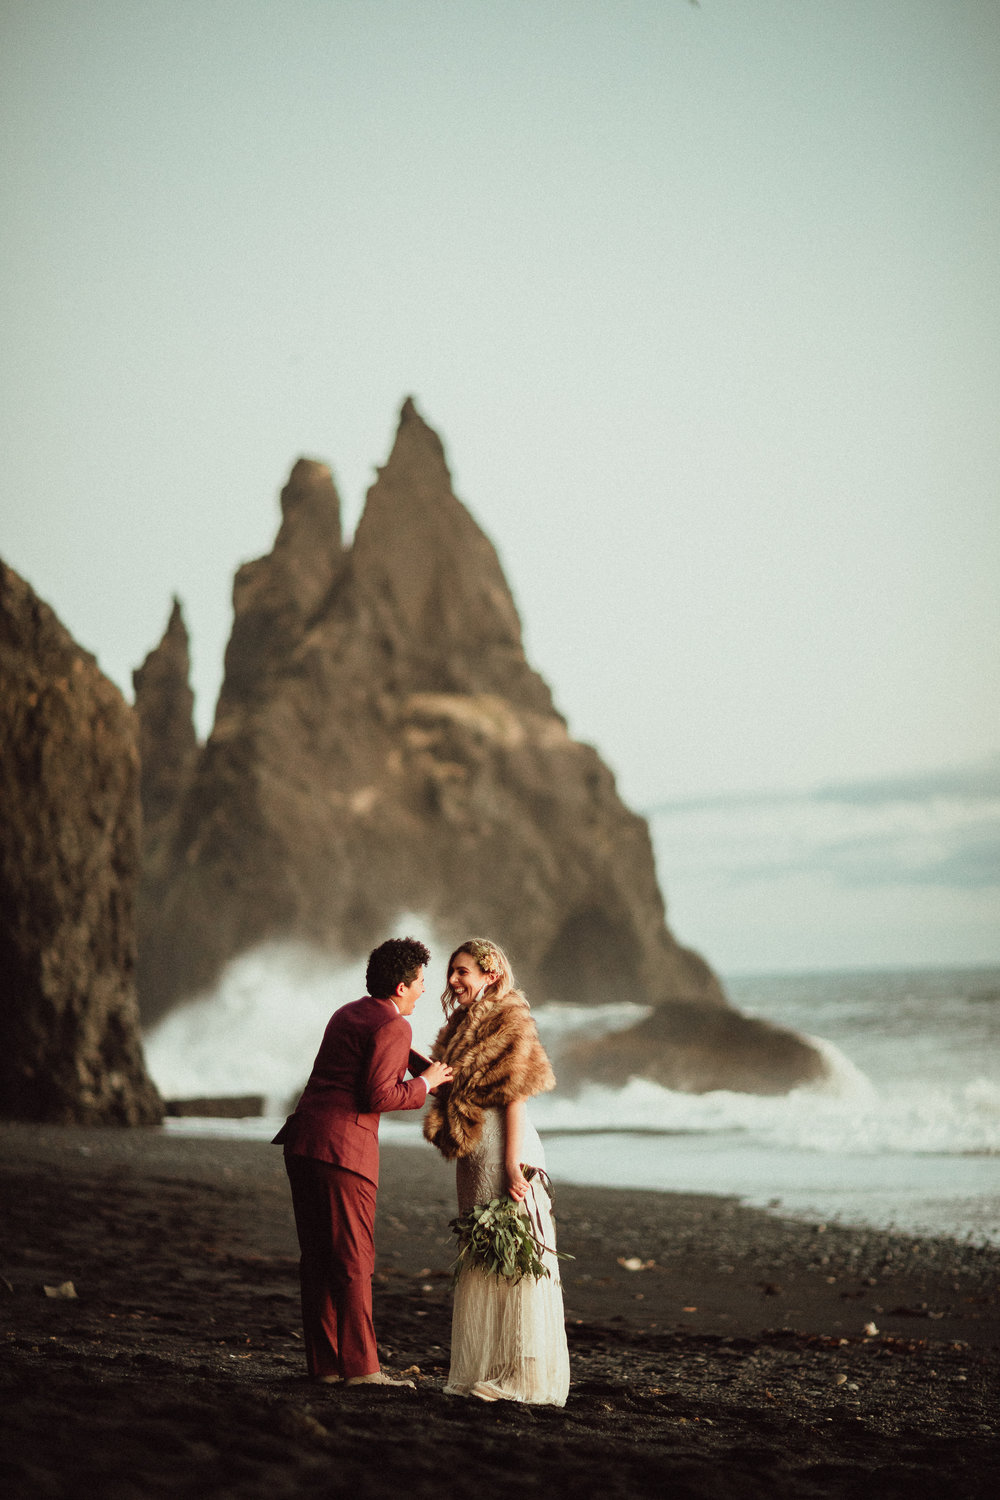 Elopement Photography starting at $3500 - with collections to make your wildest wedding dreams happen. Horses, helicopters, glaciers, volcanos, however you want it.